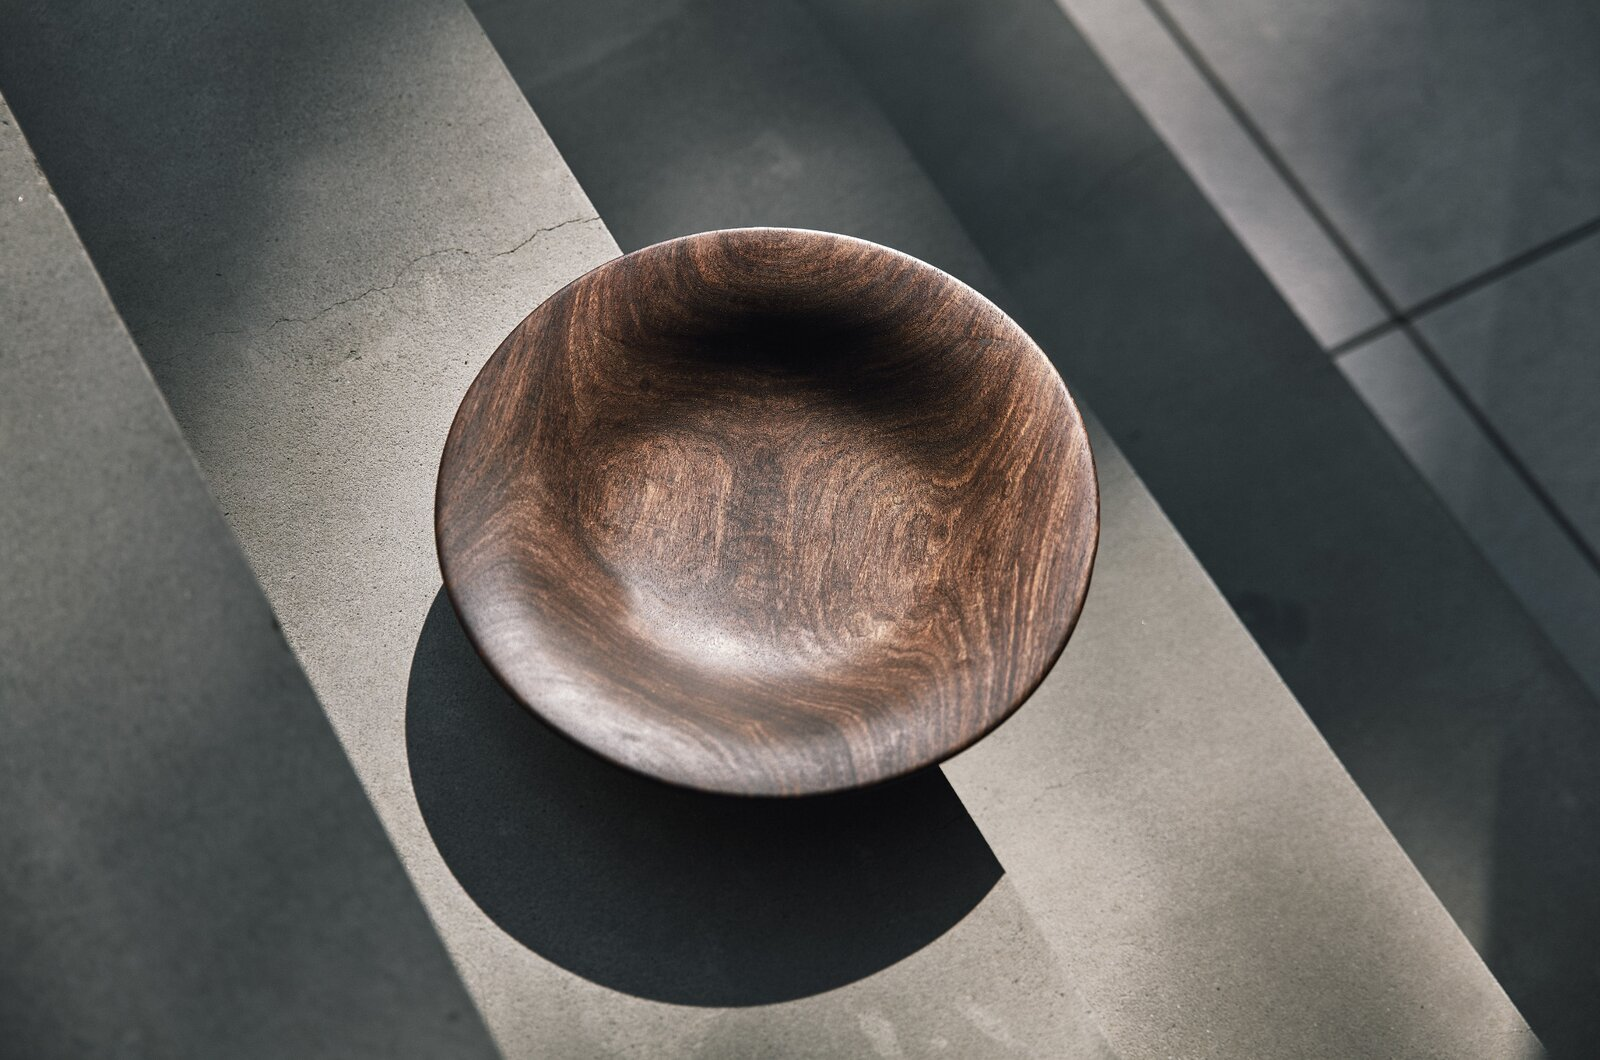 The epitome of slow design, each redwood serving bowl displays decades of natural growth rings in the woodgrain and takes Amadou many hours of hands-on work to complete.  Photo 6 of 11 in Obakki's New Collection of Handcrafted Bowls and Spoons Reveals the Beauty of Slow Design